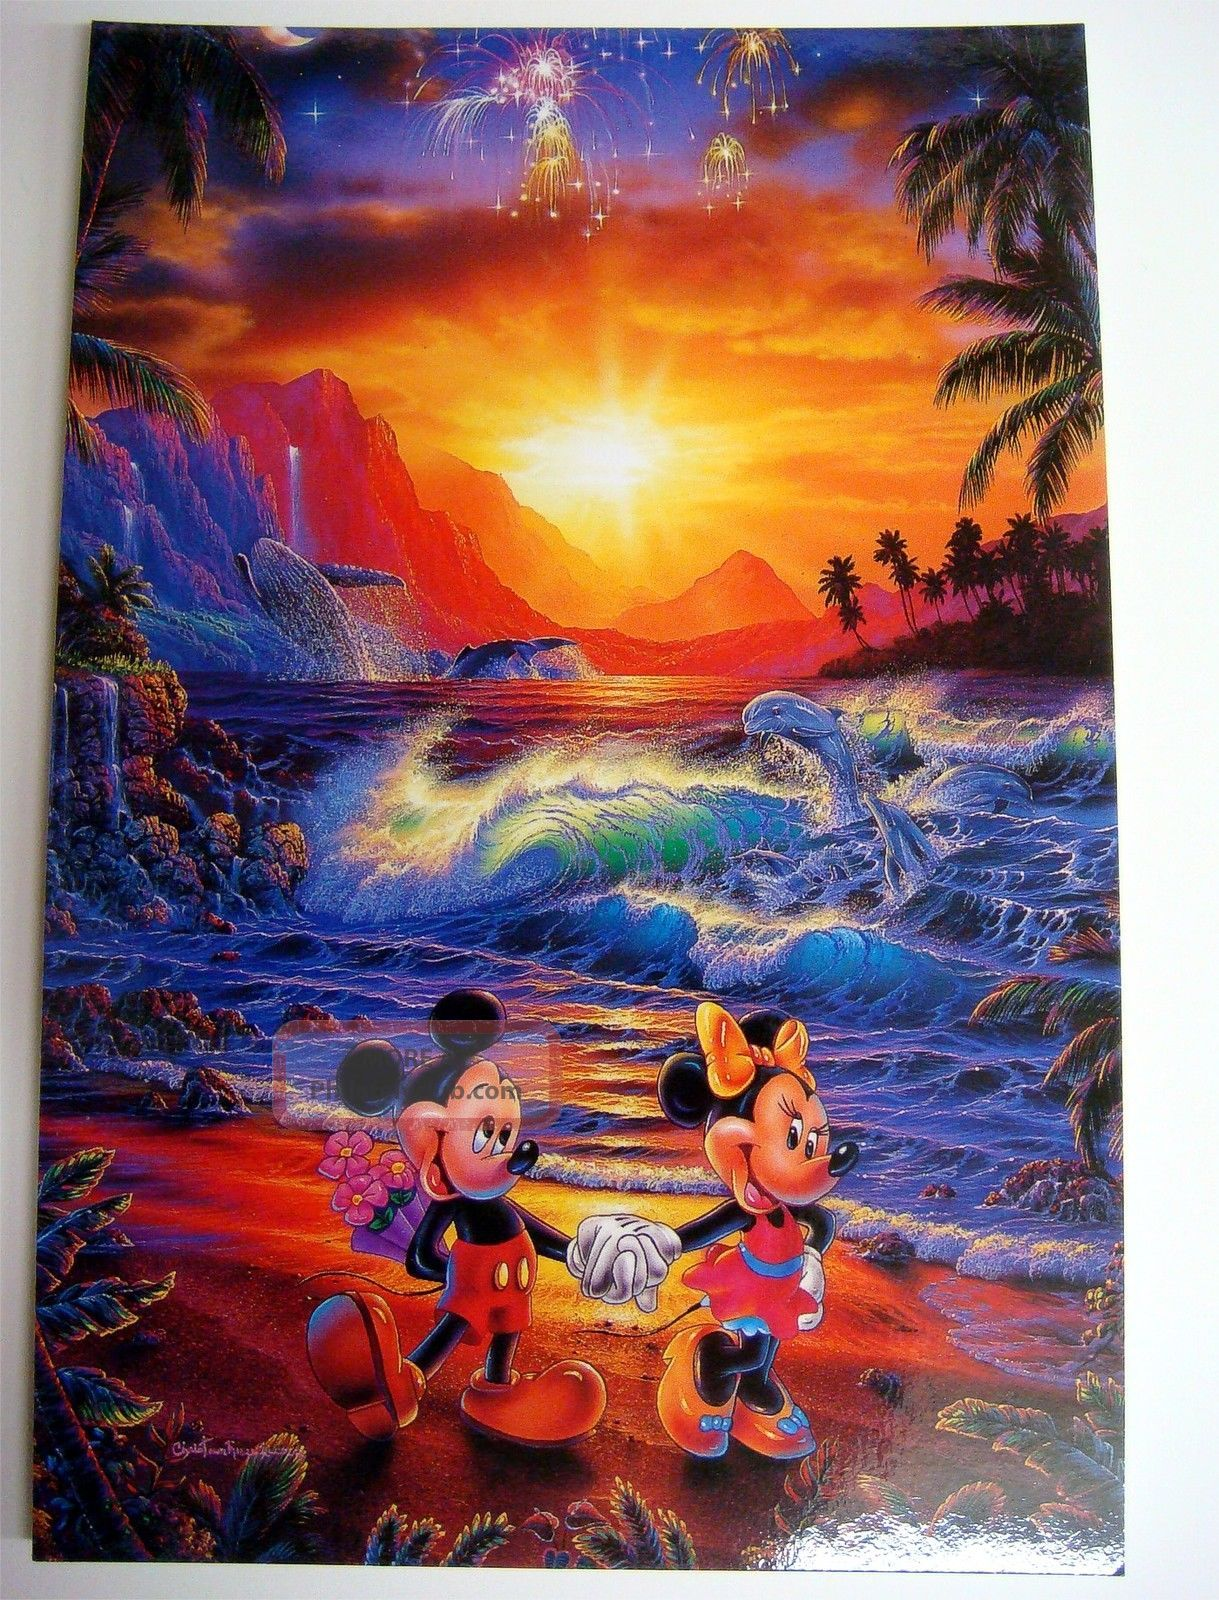 Disney Postcard Mickey Minnie Seaside Romance - The Art Of Lassen - Mikminpc Topical Stamps photo